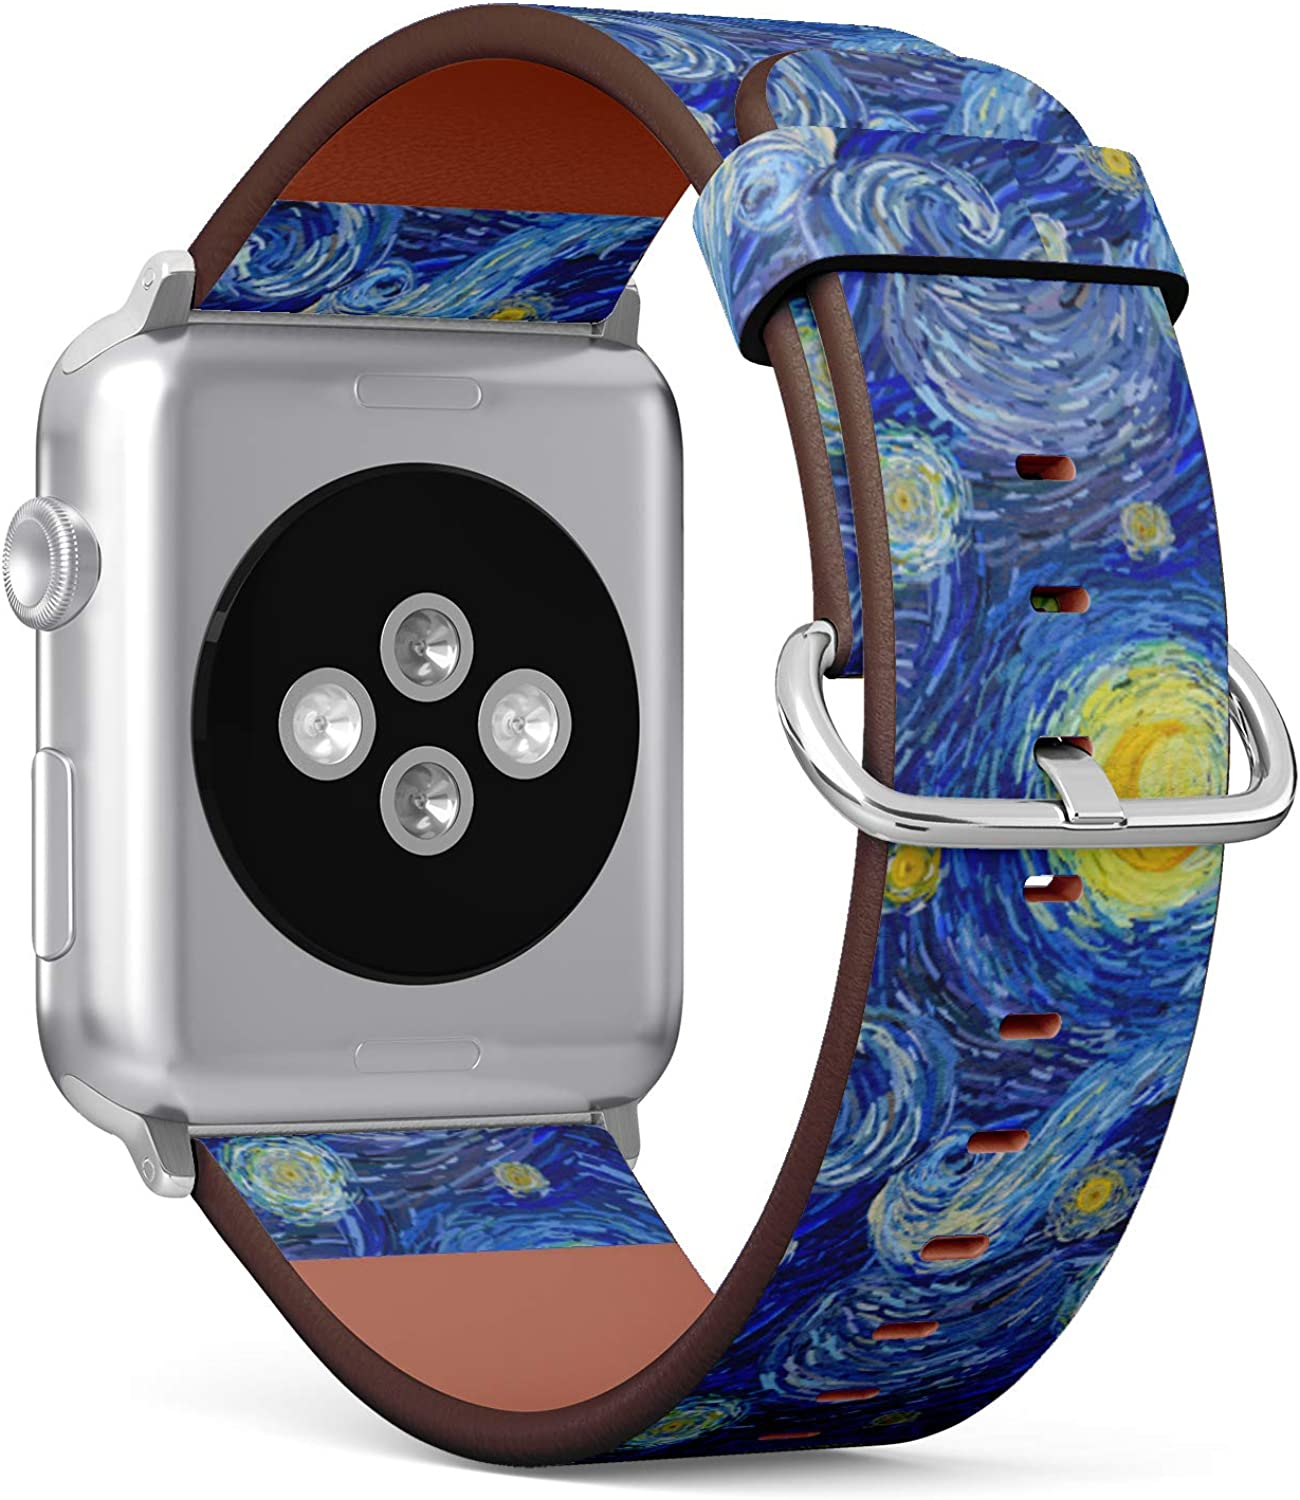 (Glowing Moon and Starry Night Abstract Background) Patterned Leather Wristband Strap for Apple Watch Series 4/3/2/1 gen,Replacement for iWatch 42mm / 44mm Bands